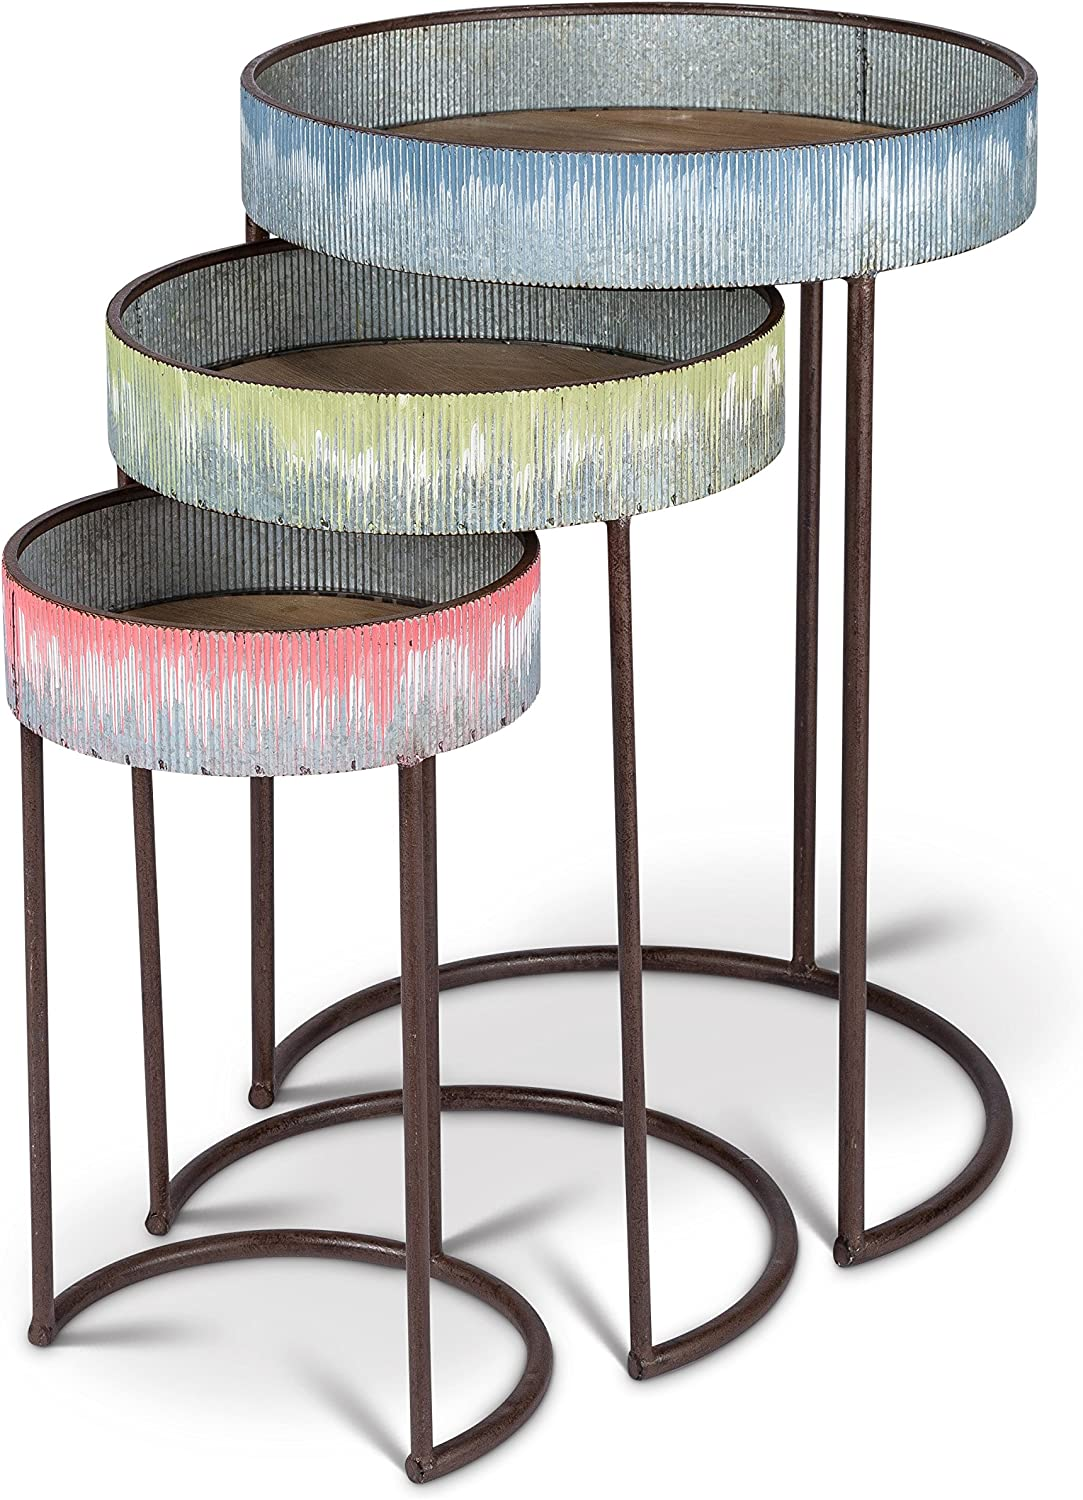 Lone Elm S 3 Drip Metal Side Tables, 19.75Inl x 19.75Inw x 27.6Inh